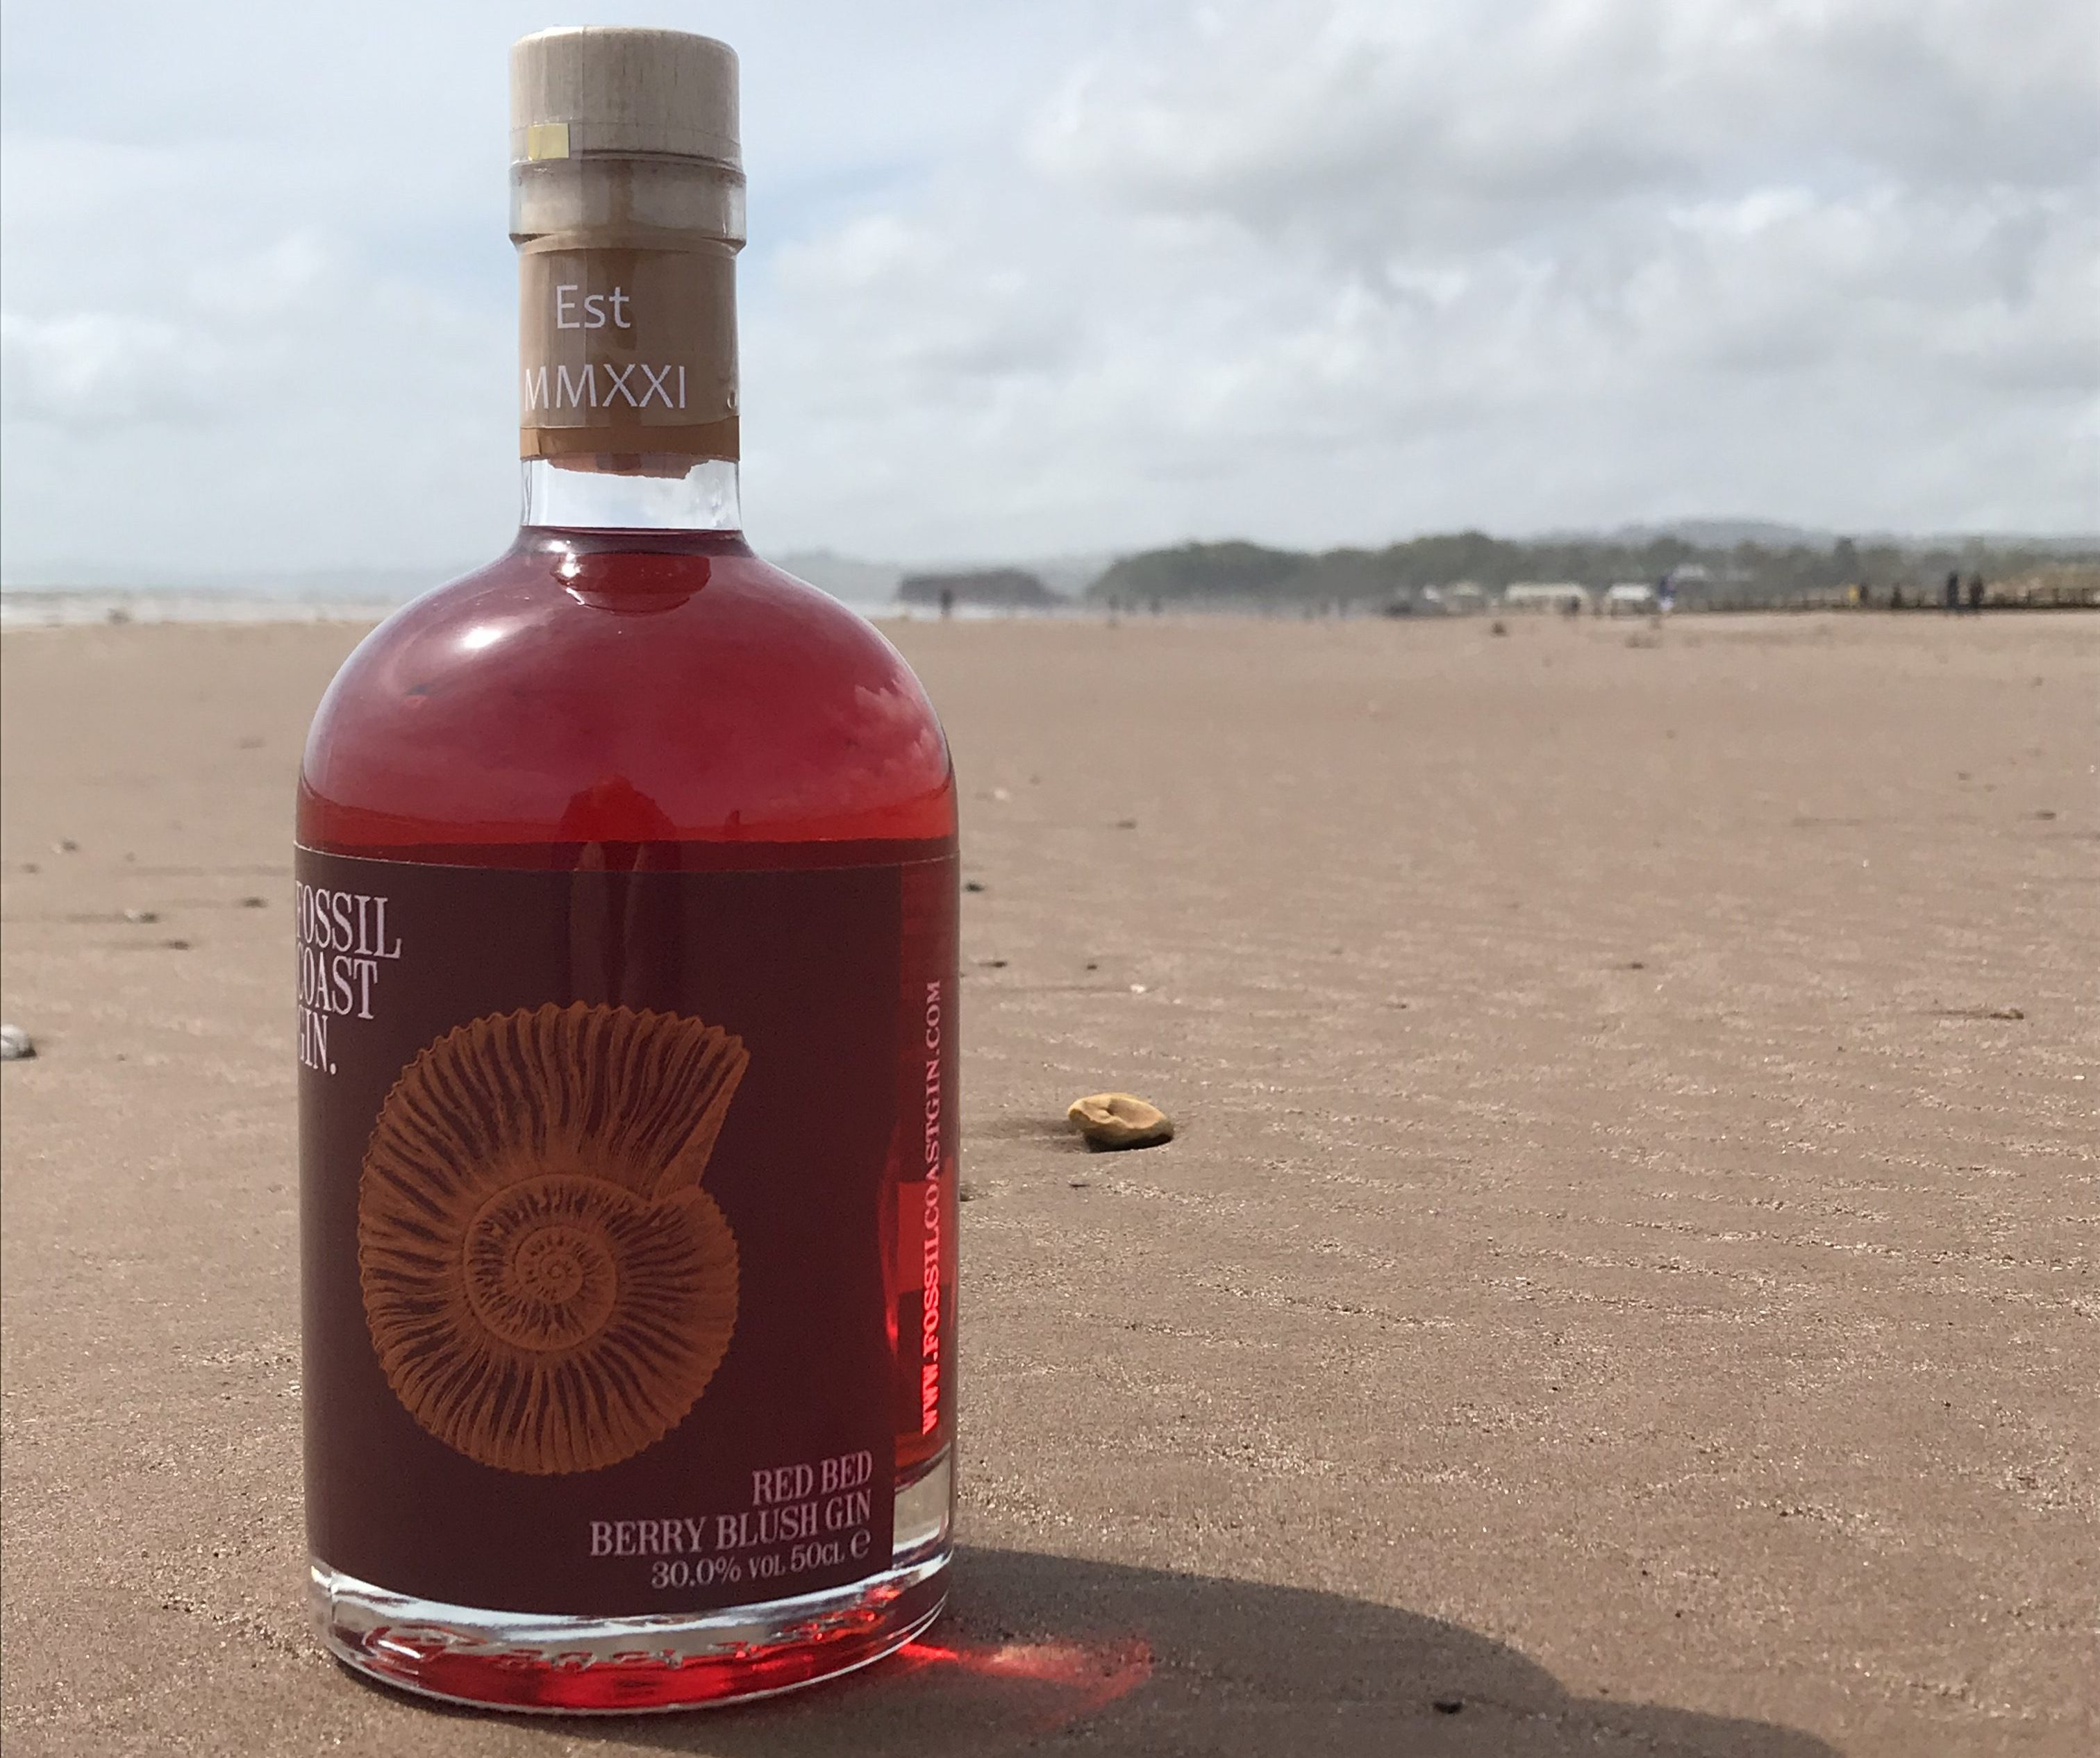 Red Bed flavoured gin from Fossil Coast Gin